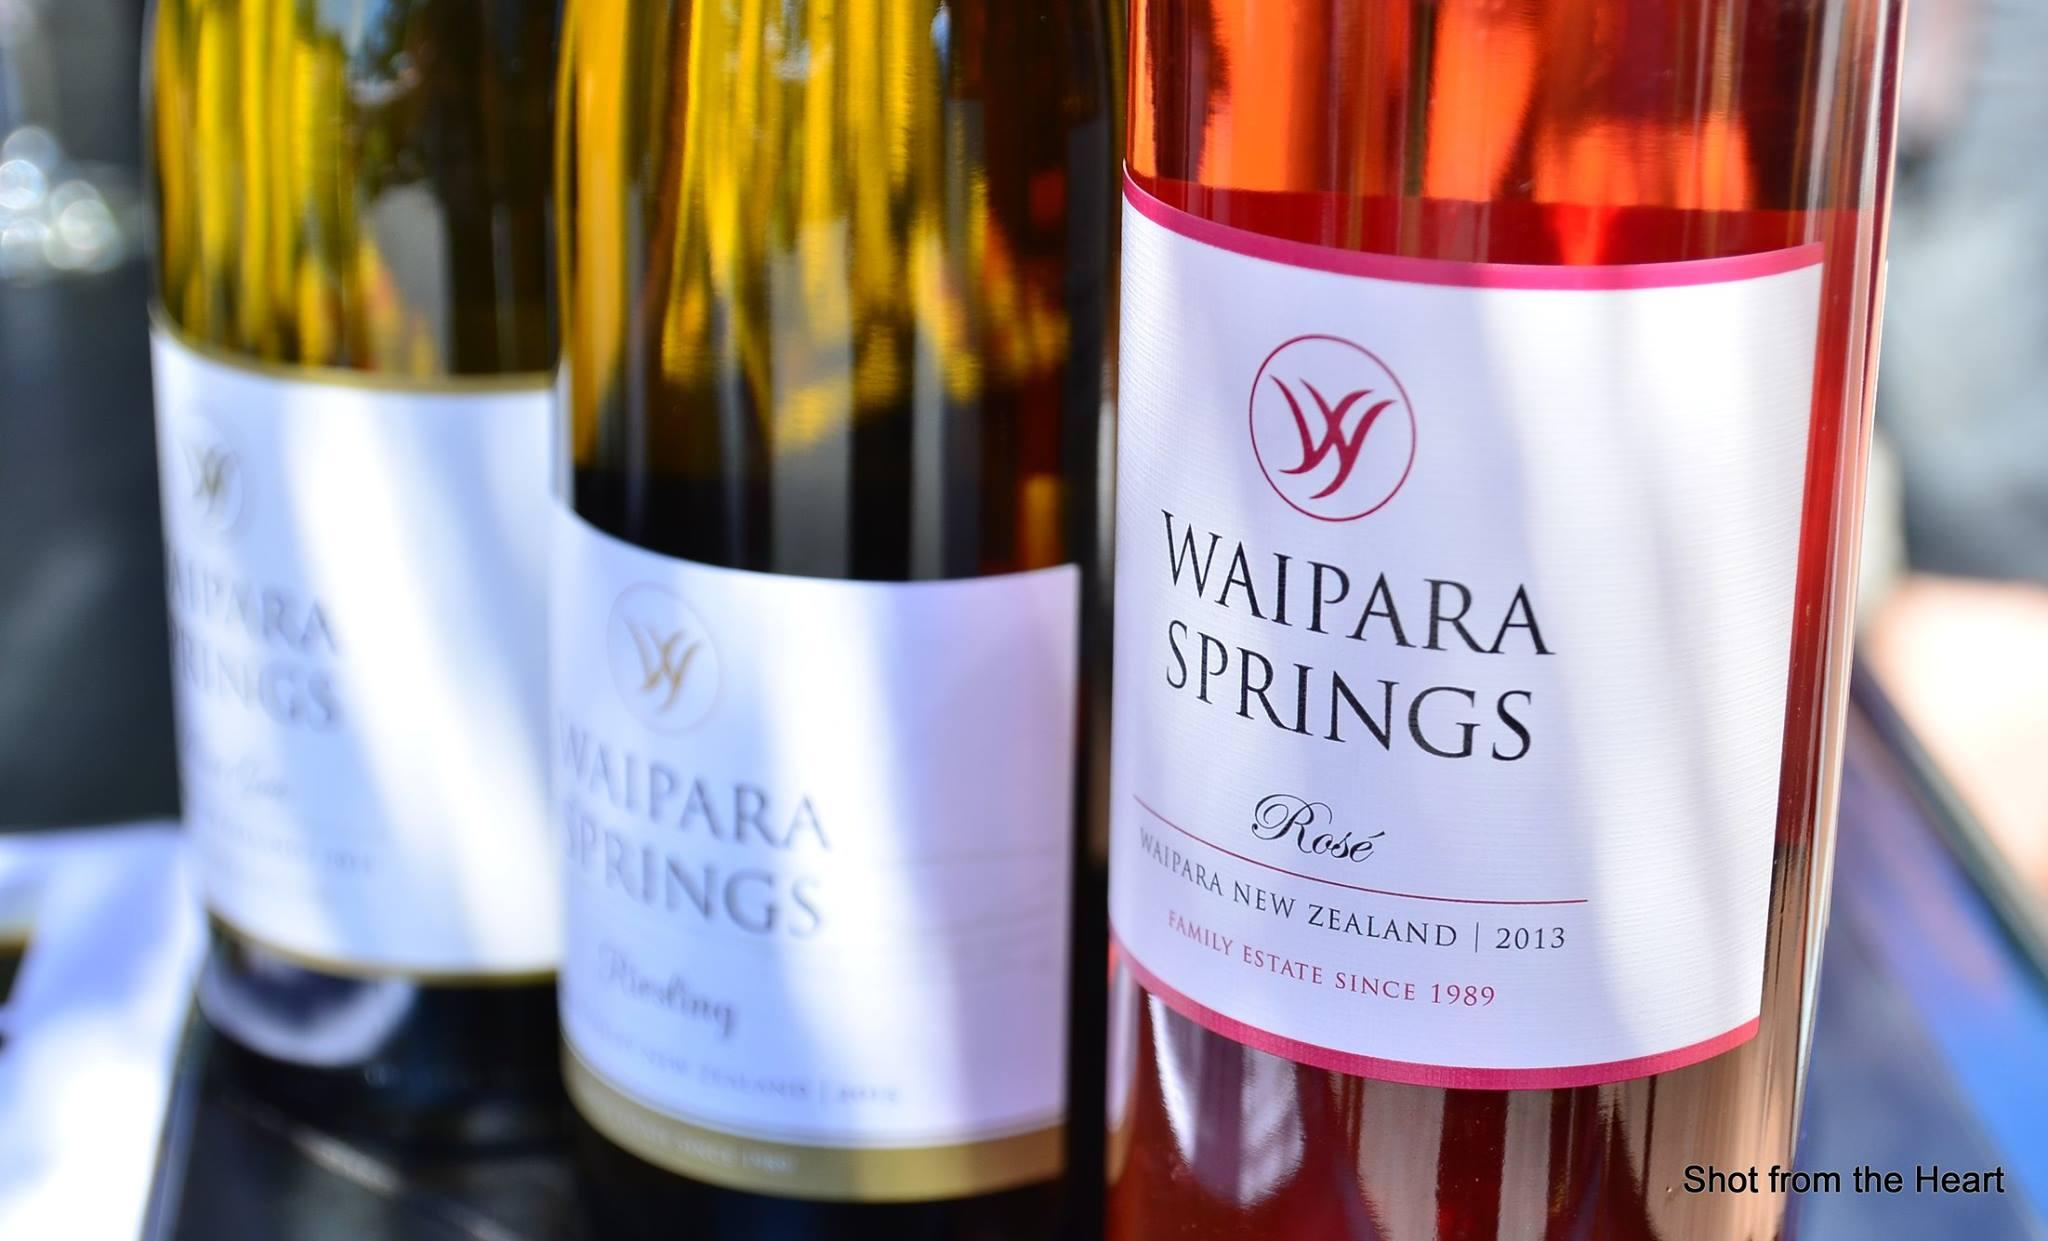 Waipara Springs Winery